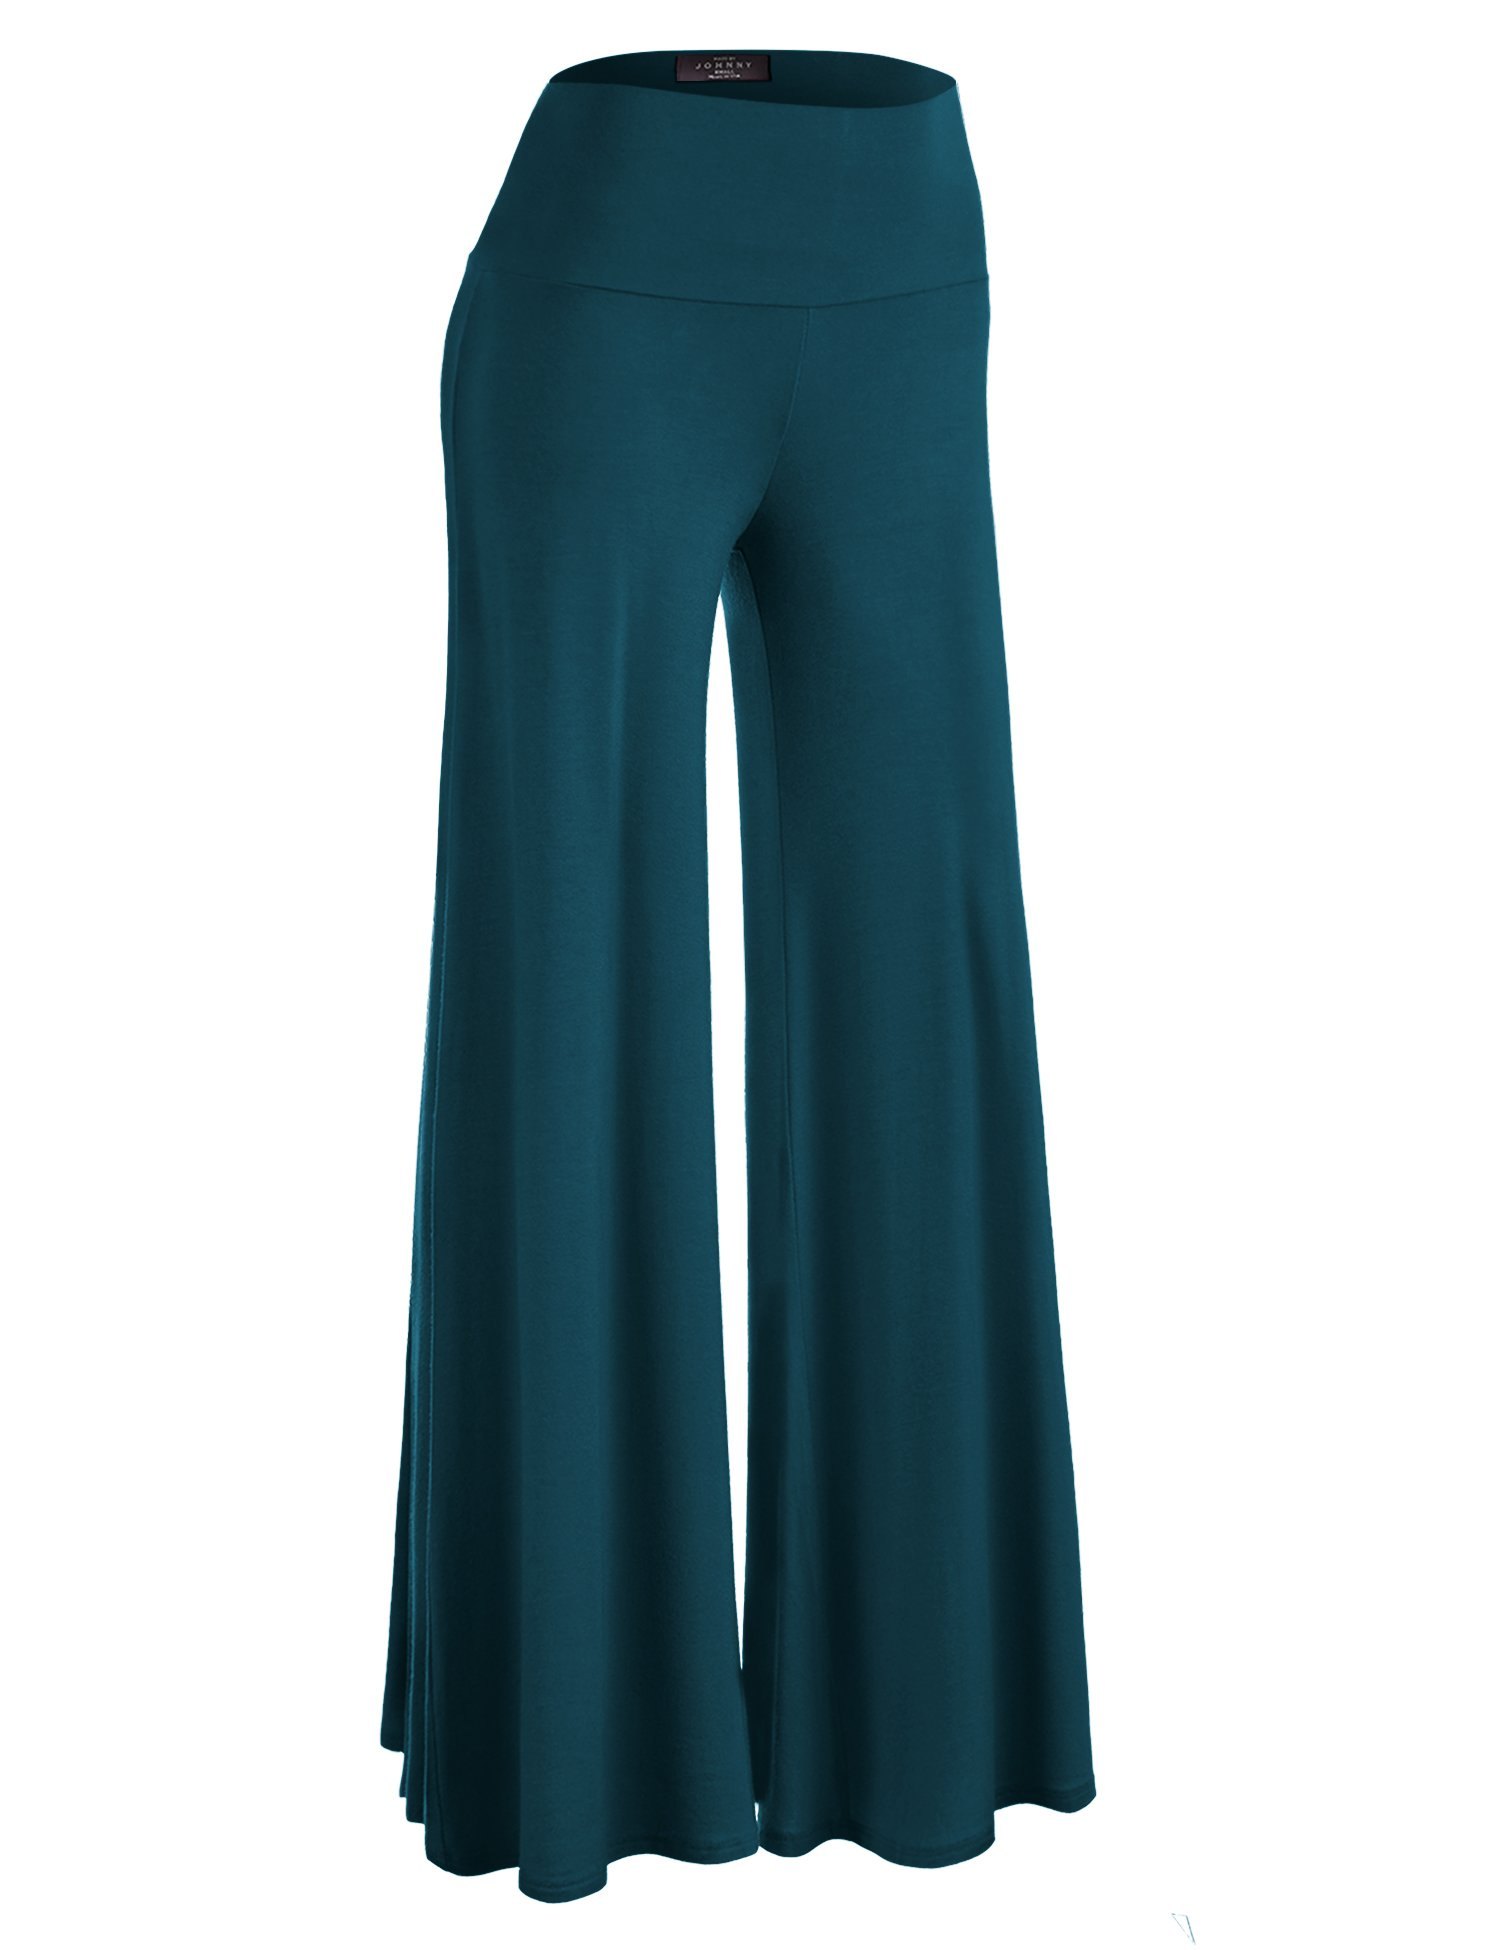 Made By Johnny WB750 Womens Chic Palazzo Lounge Pants XXXL Teal